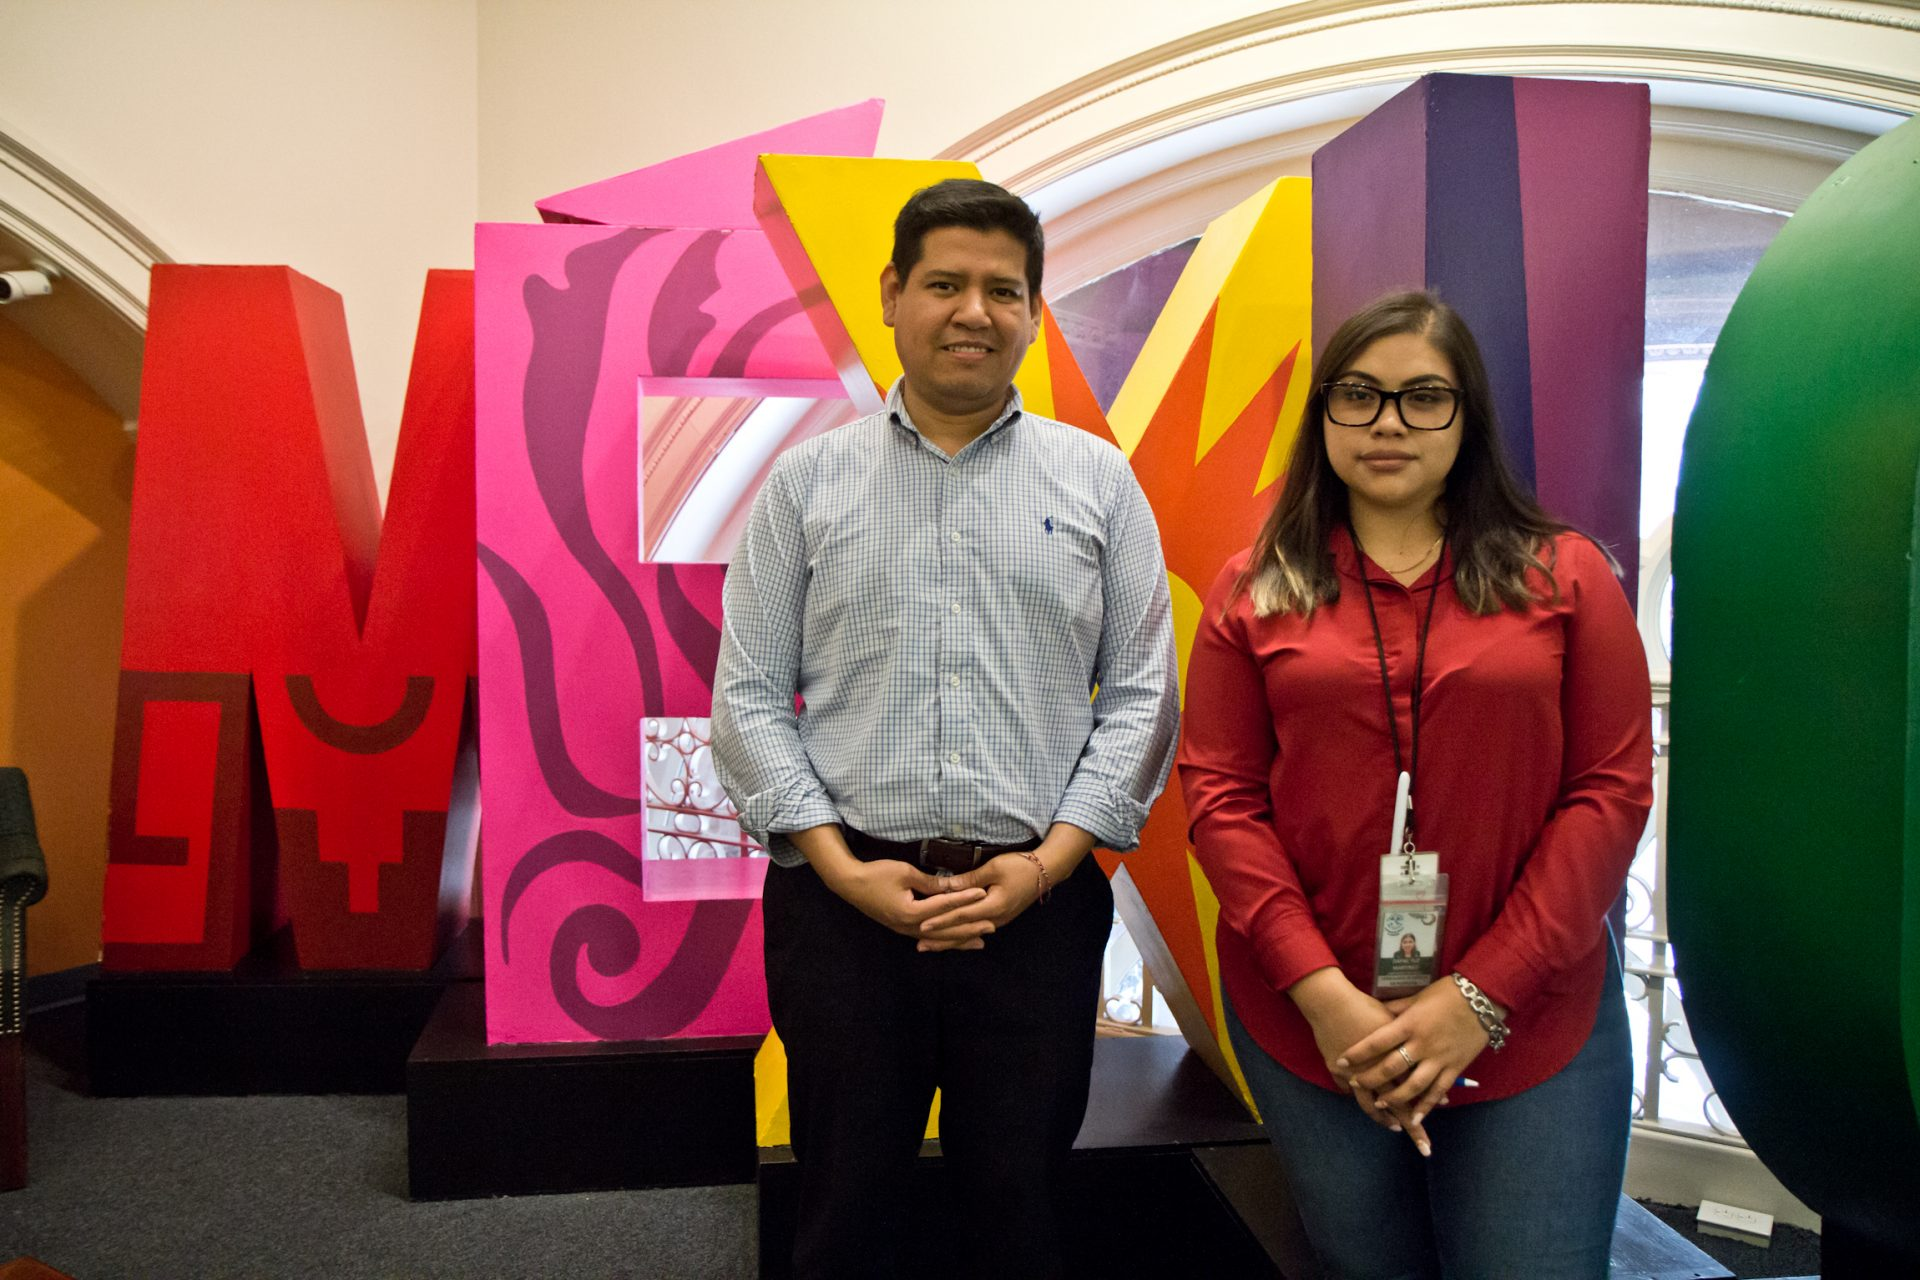 Humberto Cruz (left) is the coordinator for community efforts and Dafne Tuz Martinez coordinates the health program at the Mexican consulate in Philadelphia.